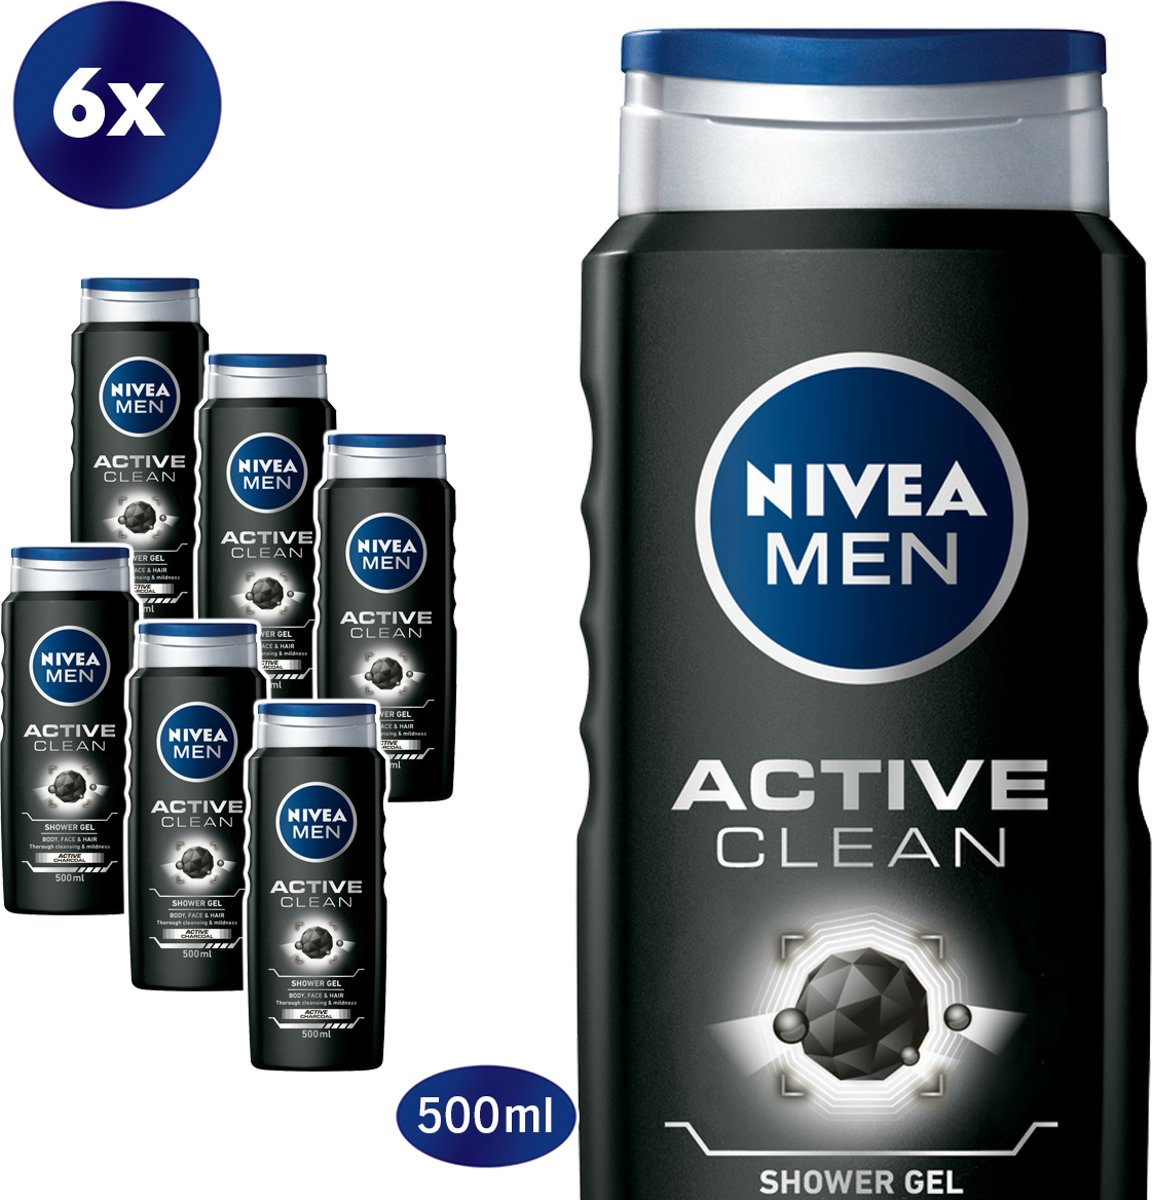 NIVEA MEN Active Clean Douchegel - 6 x 500 ml - Voordeelverpakking